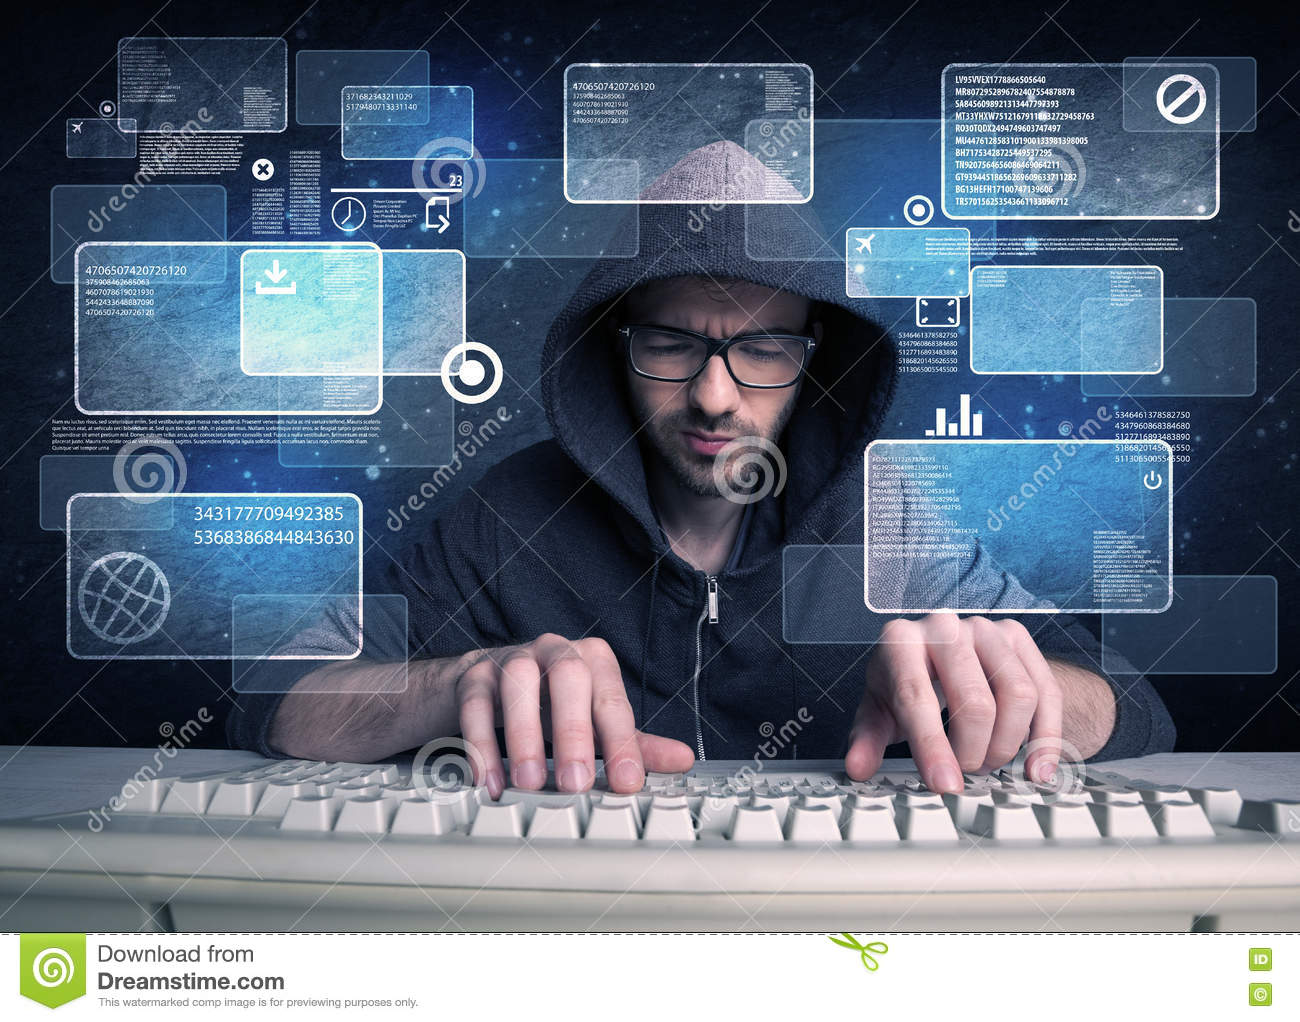 Nerd With Glasses Hacking Websites Stock Photo - Image of pass, face